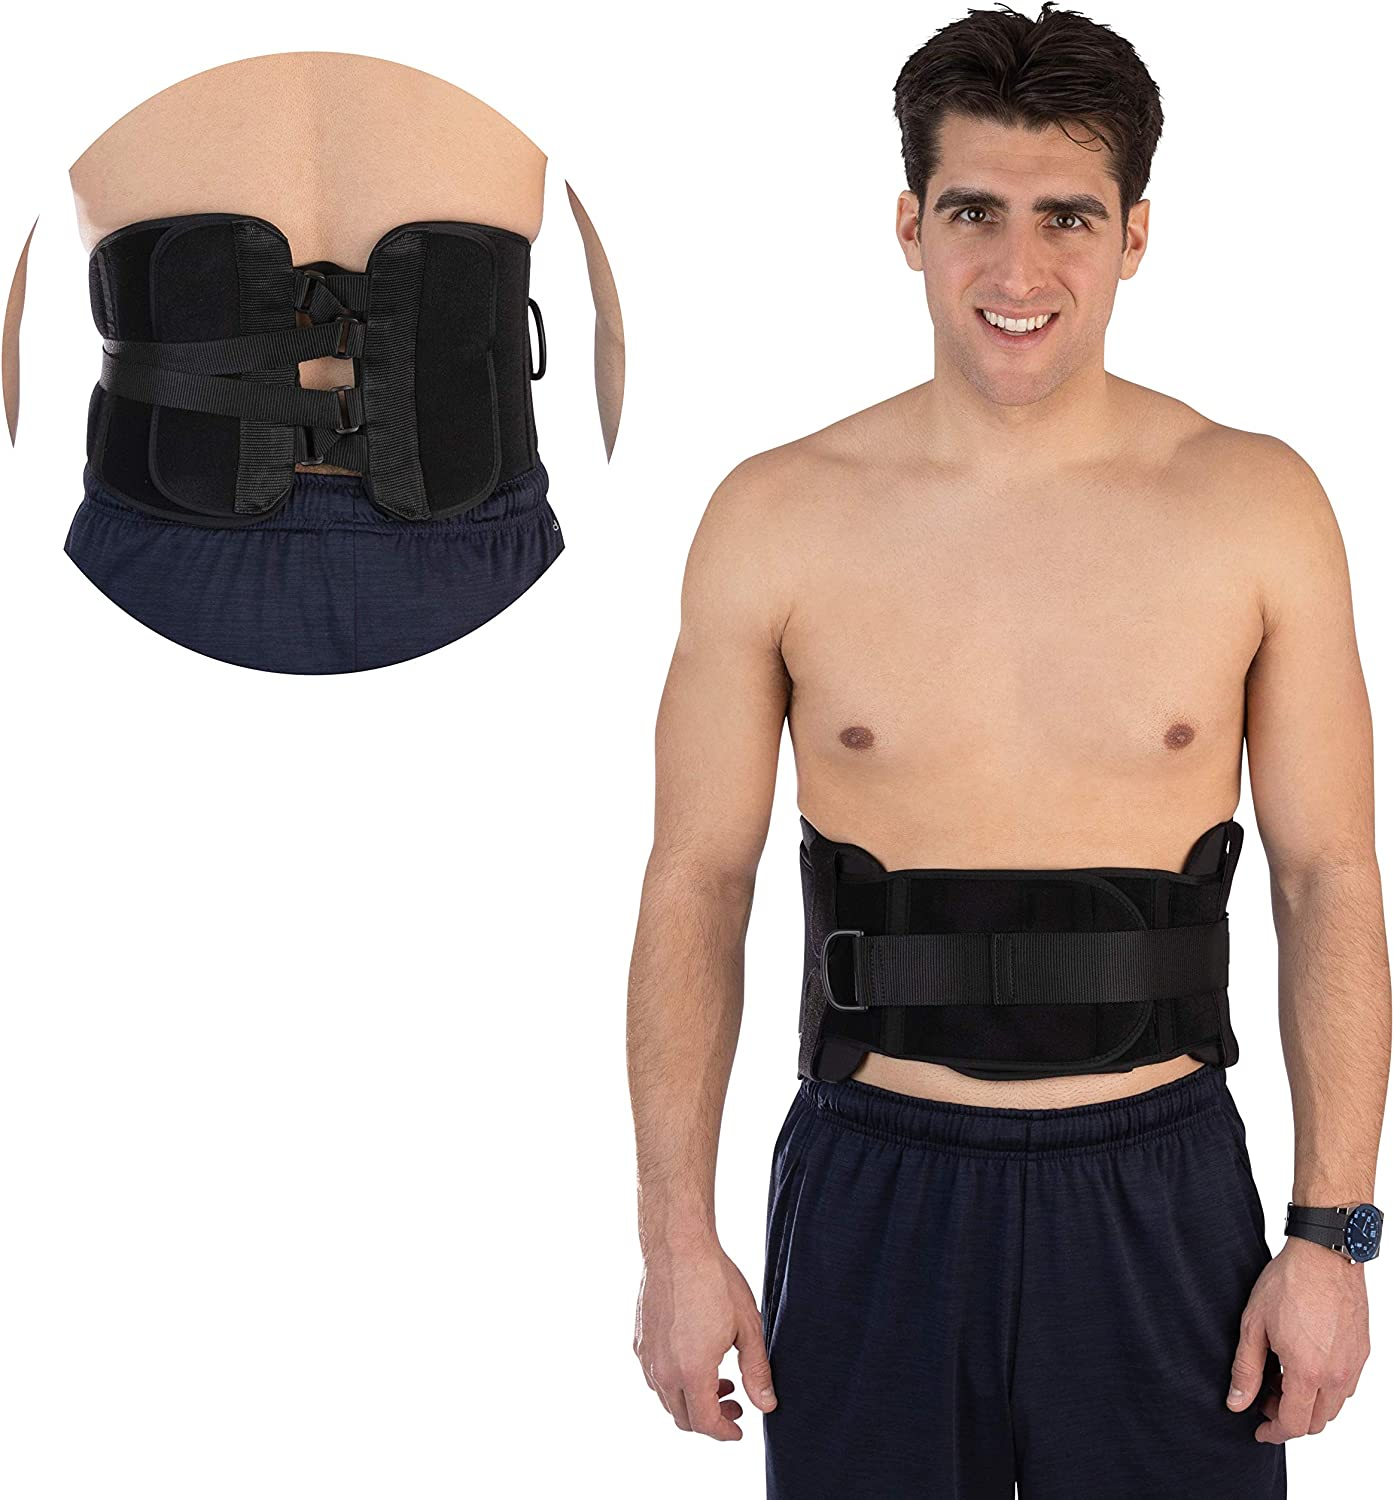 BH SUPPLIES Back Brace Lumbar Support Compression Belt for Lower Back Pain for Men and Women